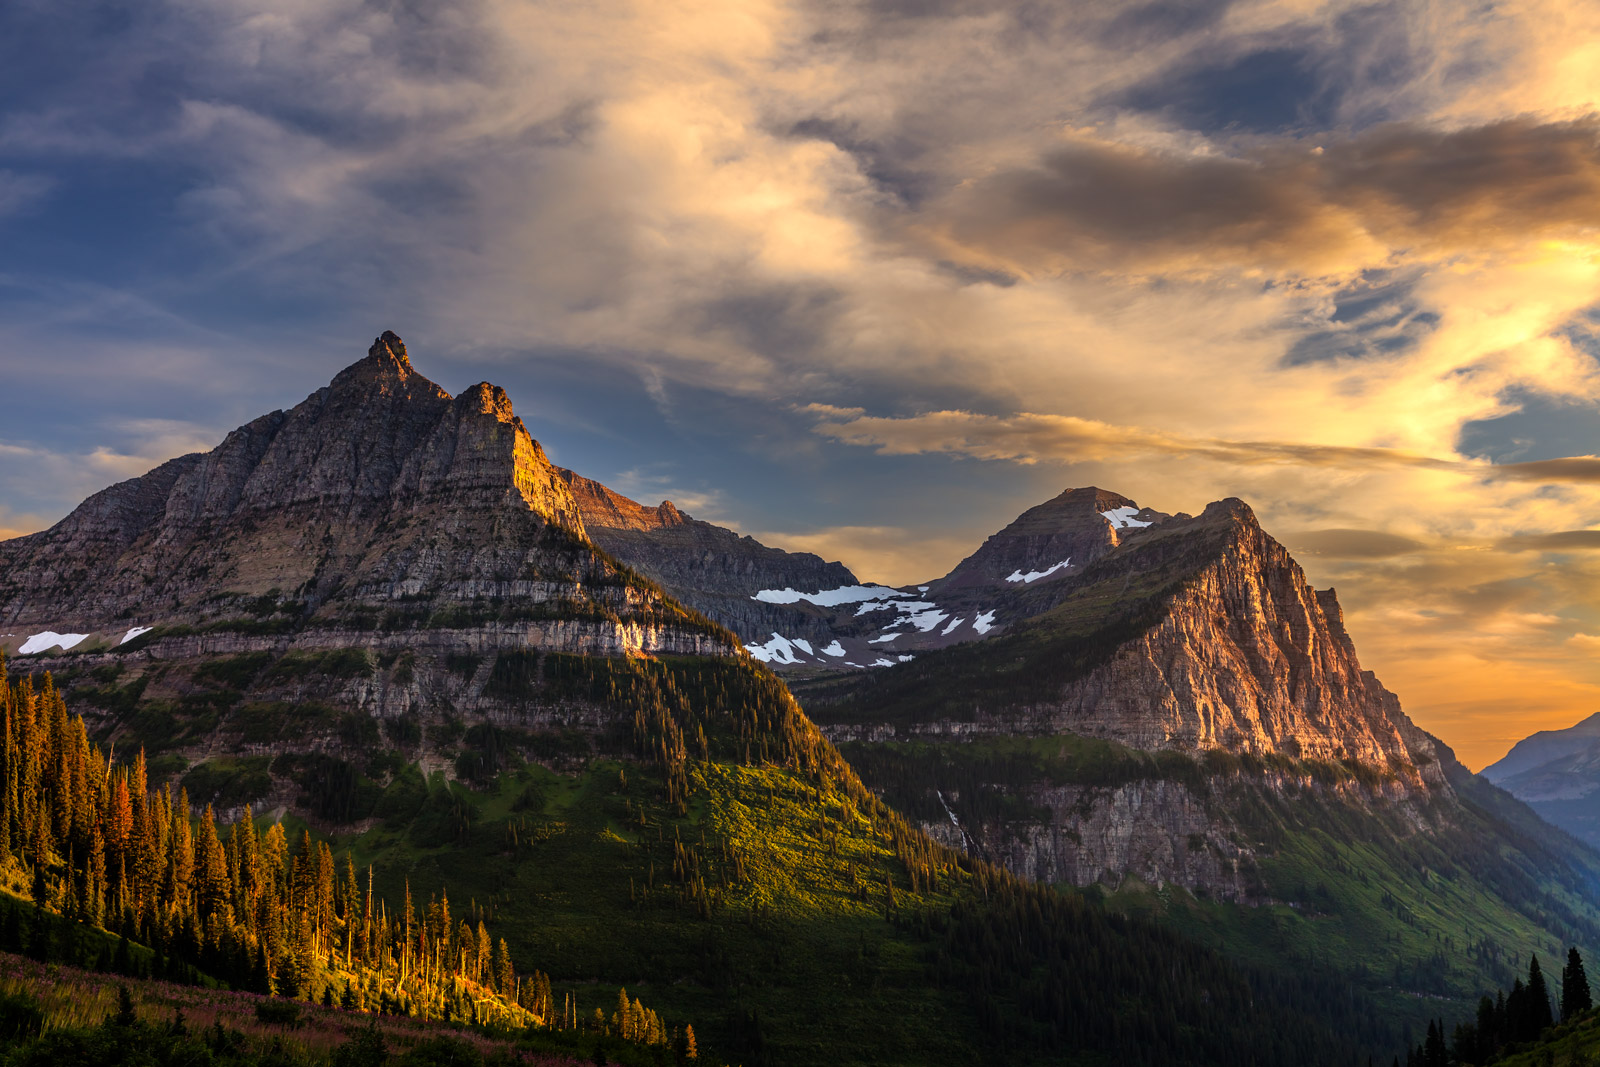 A Limited Edition, Fine Art photograph of a beautiful sunset over the majestic mountains of Glacier National Park in Montana....